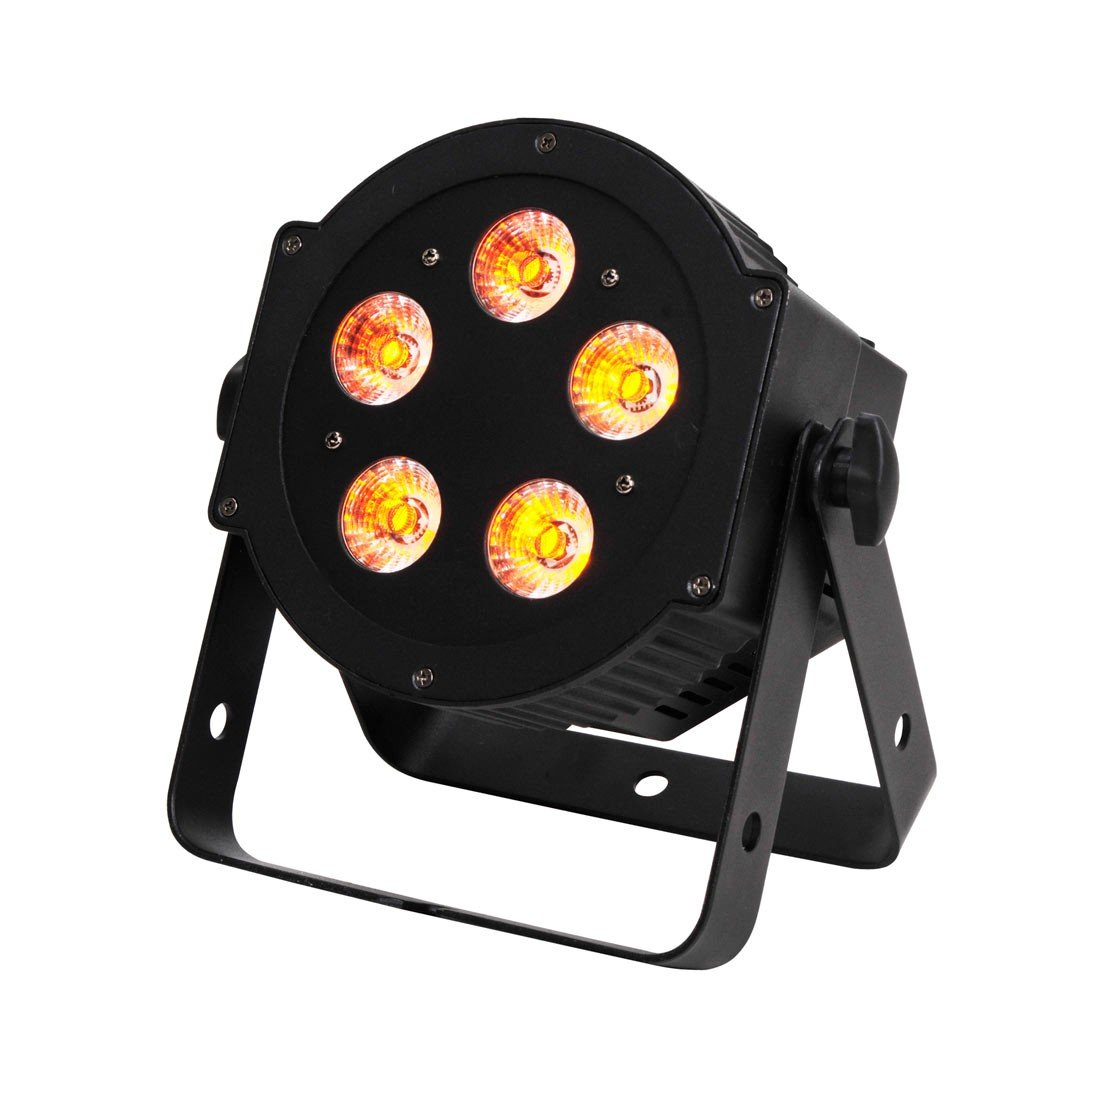 ADJ Products 5P HEX LED Par with 5x10 W, 6-IN-1 Hex by ADJ Products